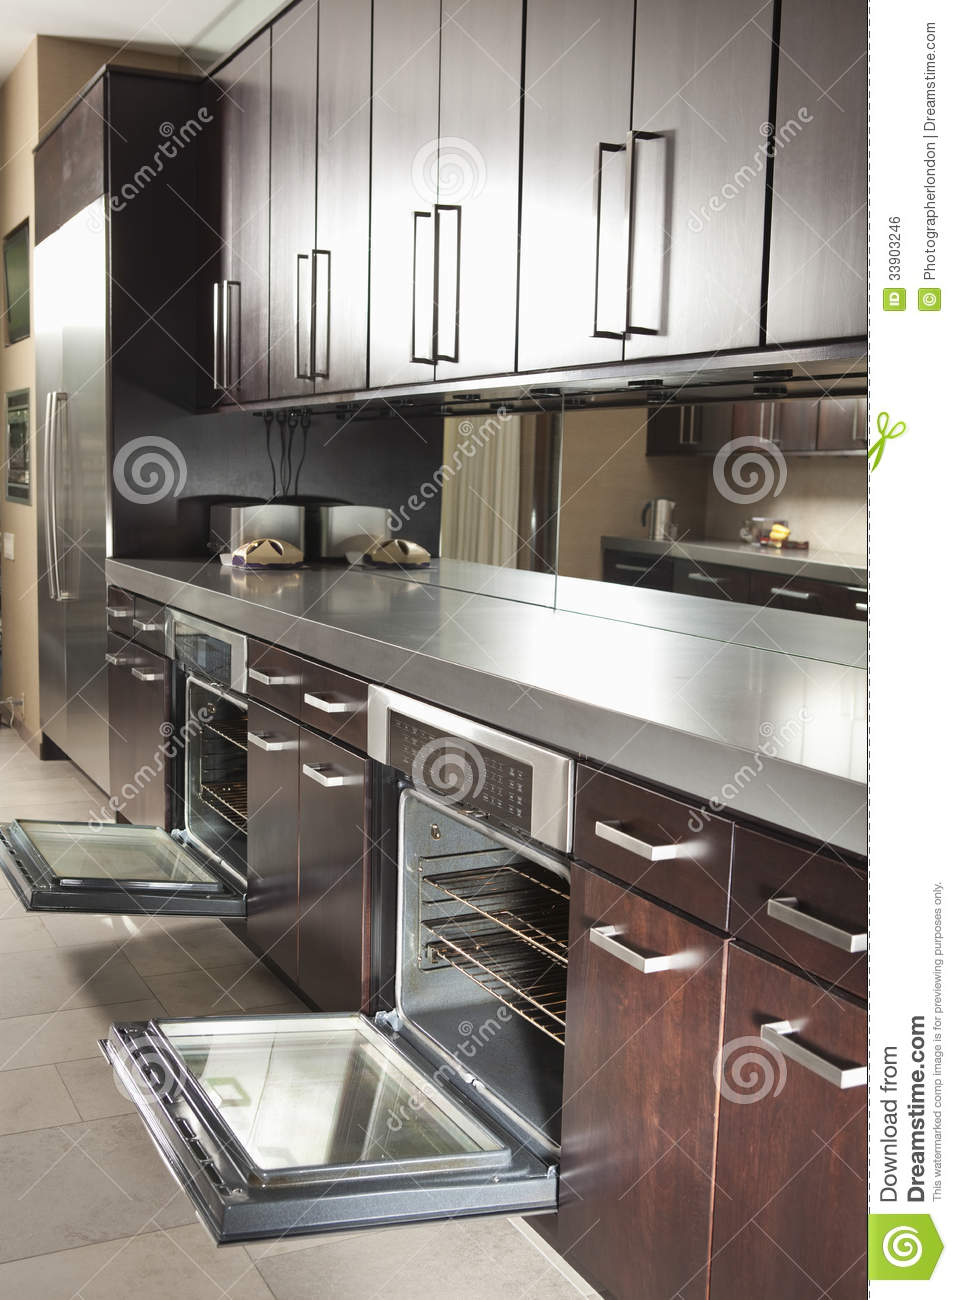 open cabinet kitchen kitchen with open oven and cabinets stock photo 1198